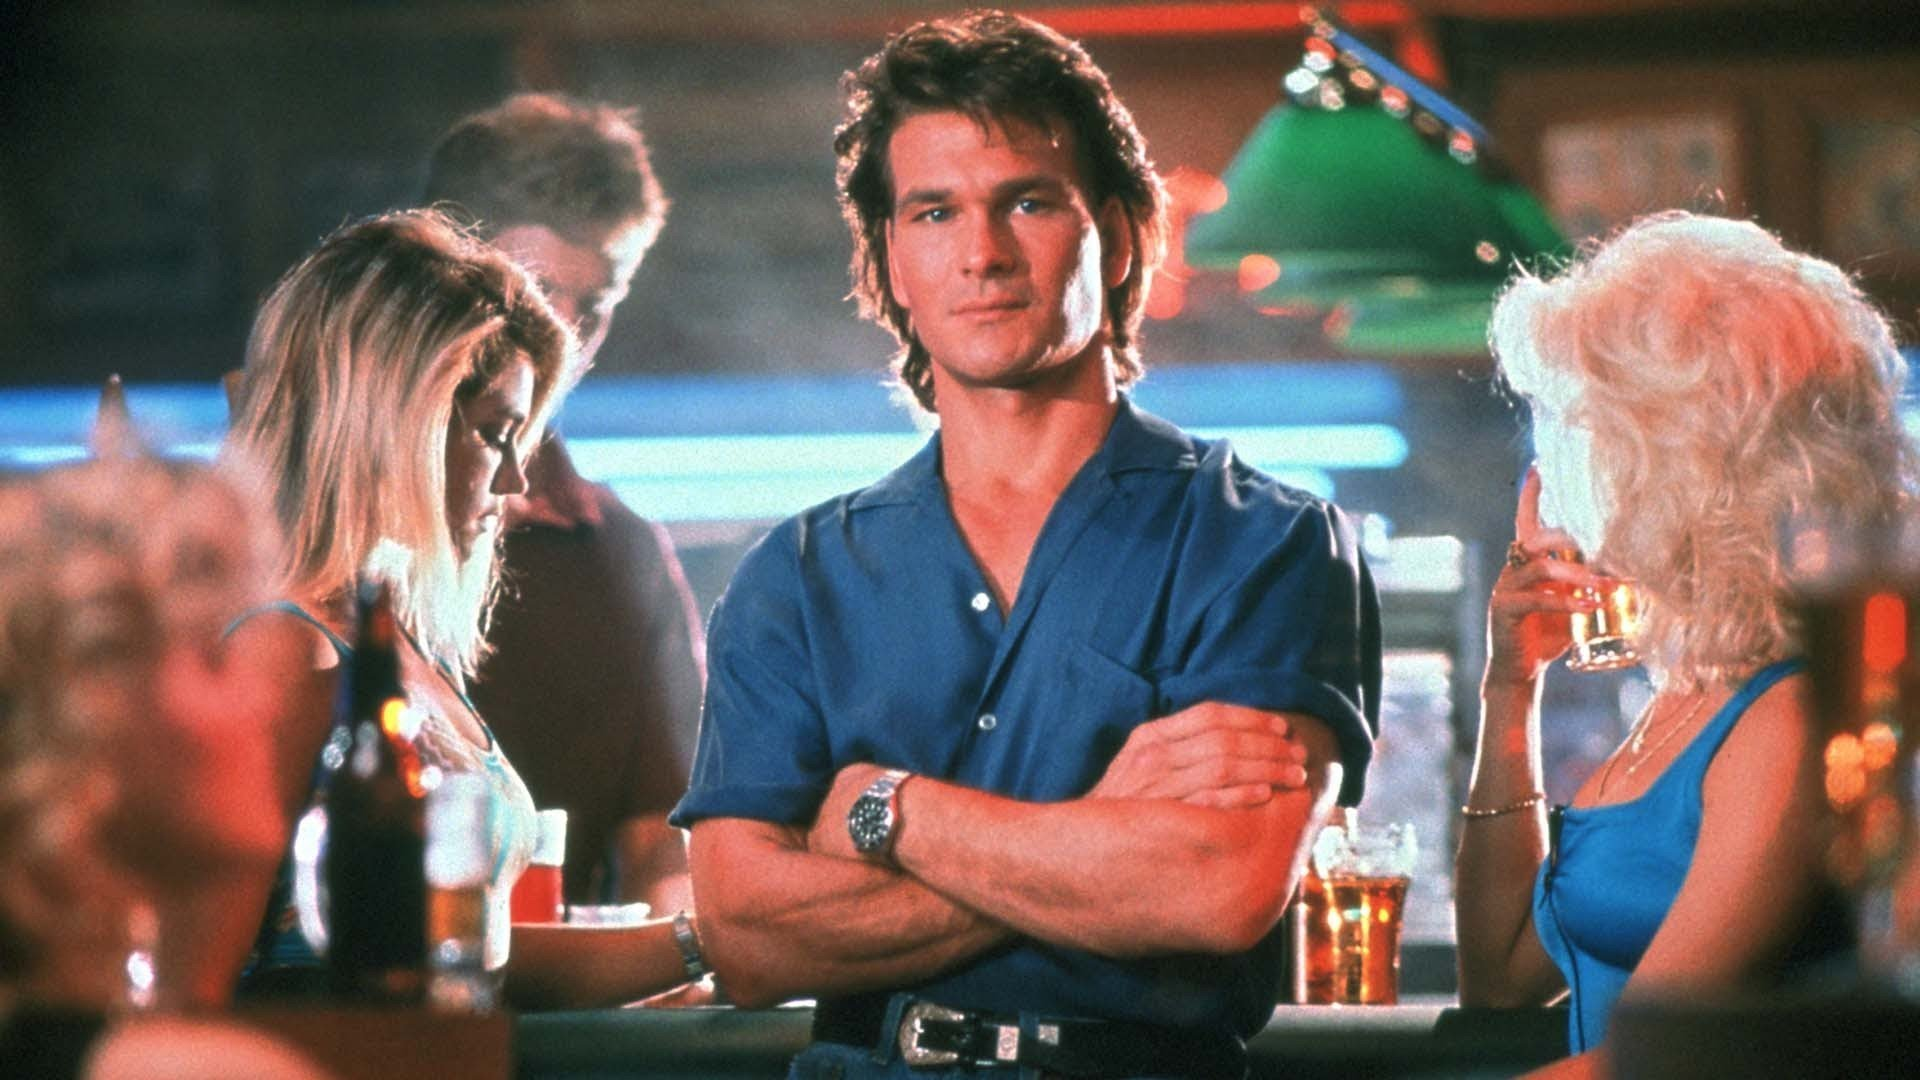 Patrick Swayze Download